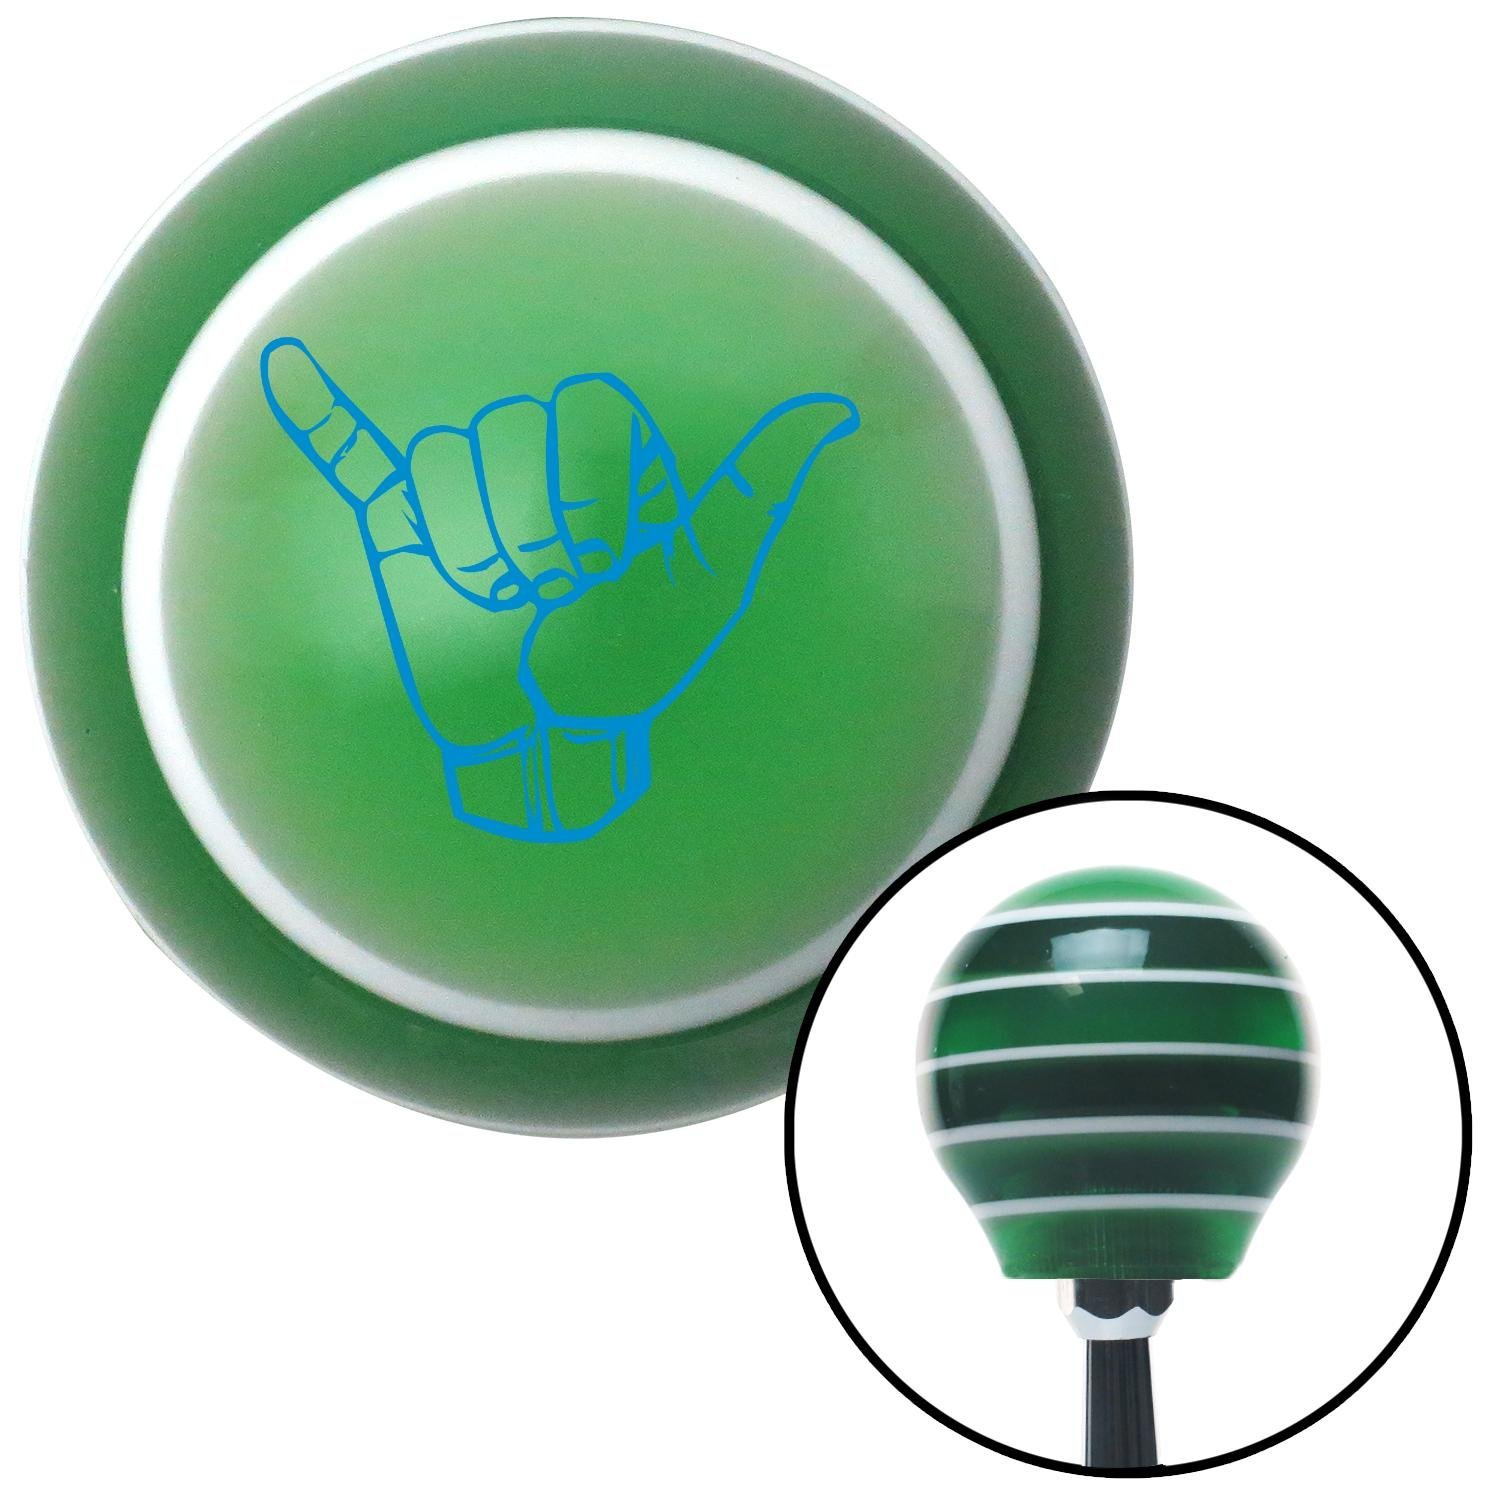 American Shifter 122818 Green Stripe Shift Knob with M16 x 1.5 Insert Blue Hang Loose w//Detailed Hand